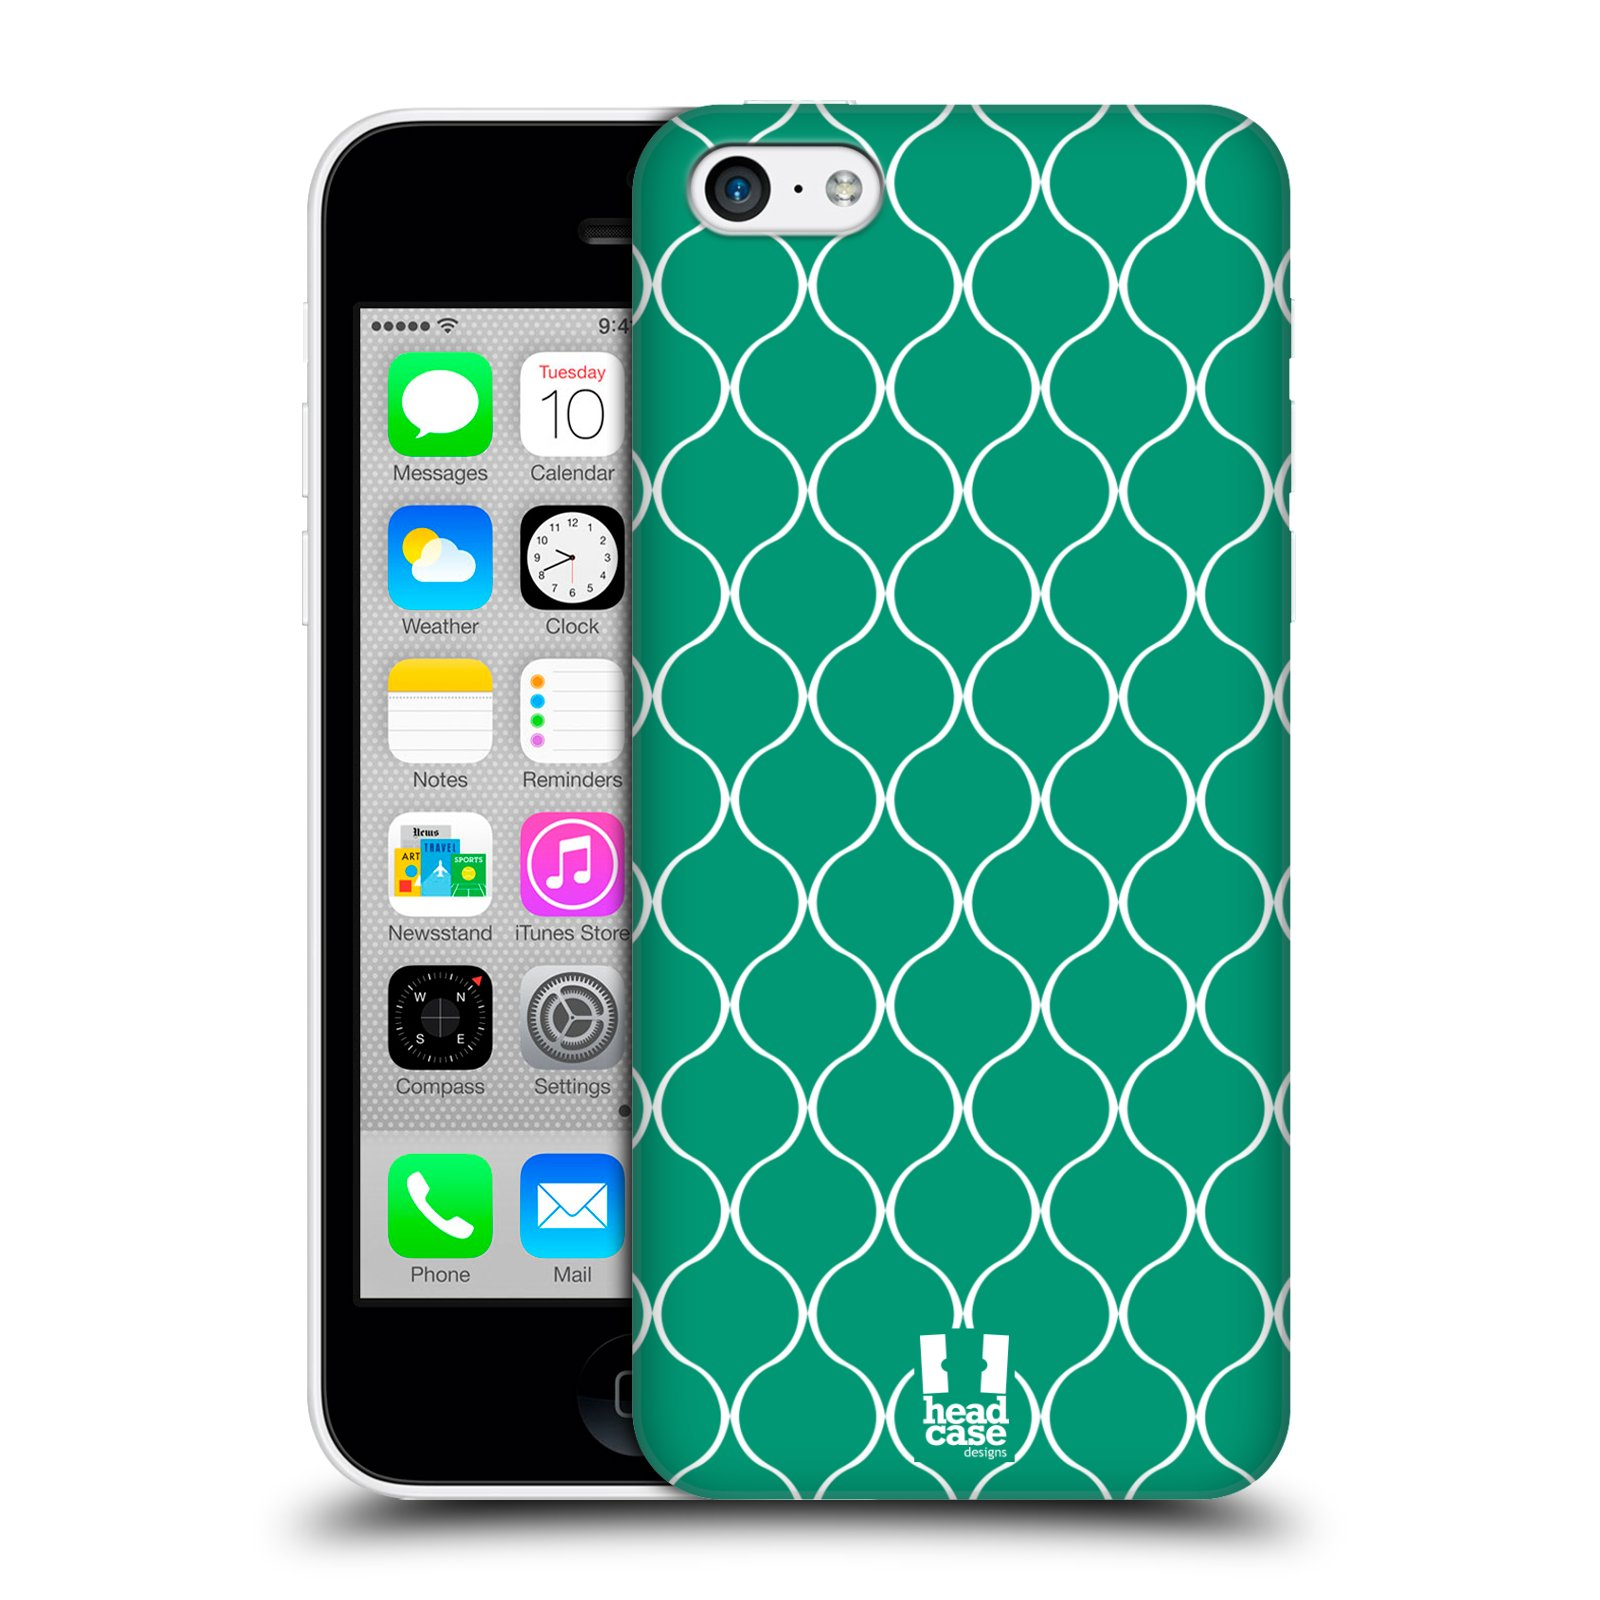 HEAD-CASE-DESIGNS-OGEE-PATTERN-PROTECTIVE-BACK-CASE-COVER-FOR-APPLE-iPHONE-5C